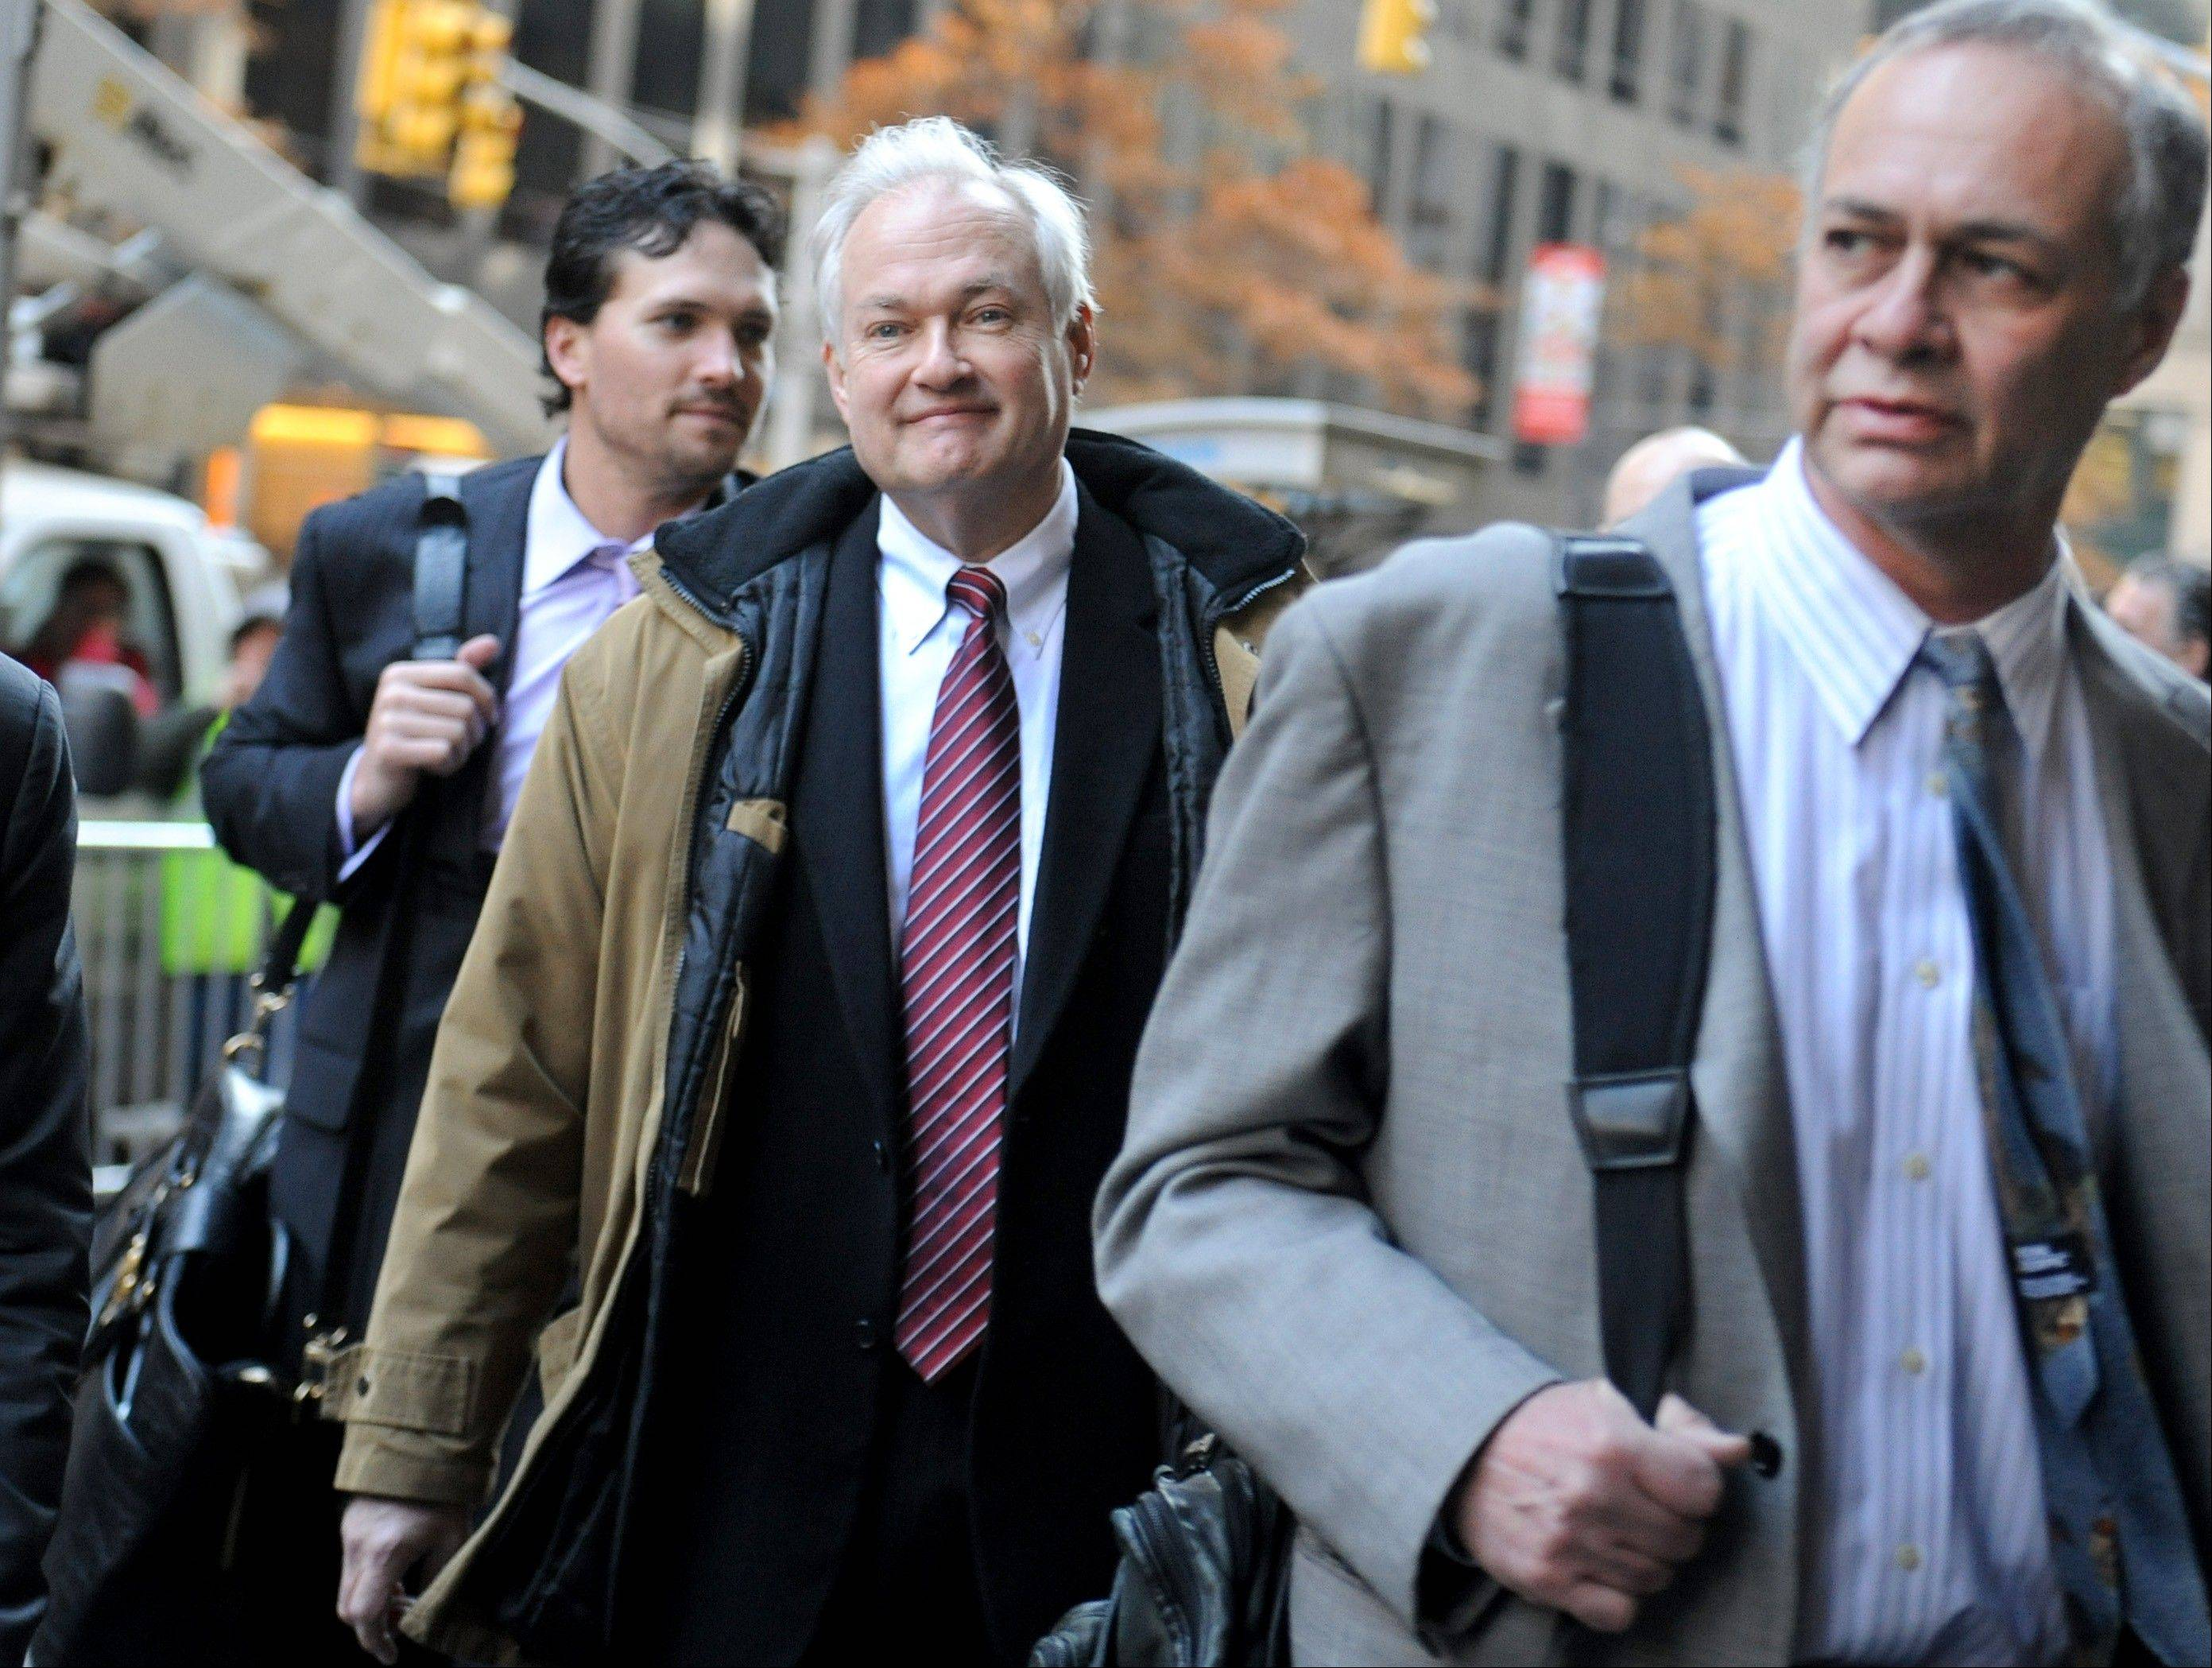 NHL Players� Association executive director Donald Fehr, center, arrives Wednesday for labor talks at NHL headquarters in New York with his brother, NHLPA counsel Steven Fehr.